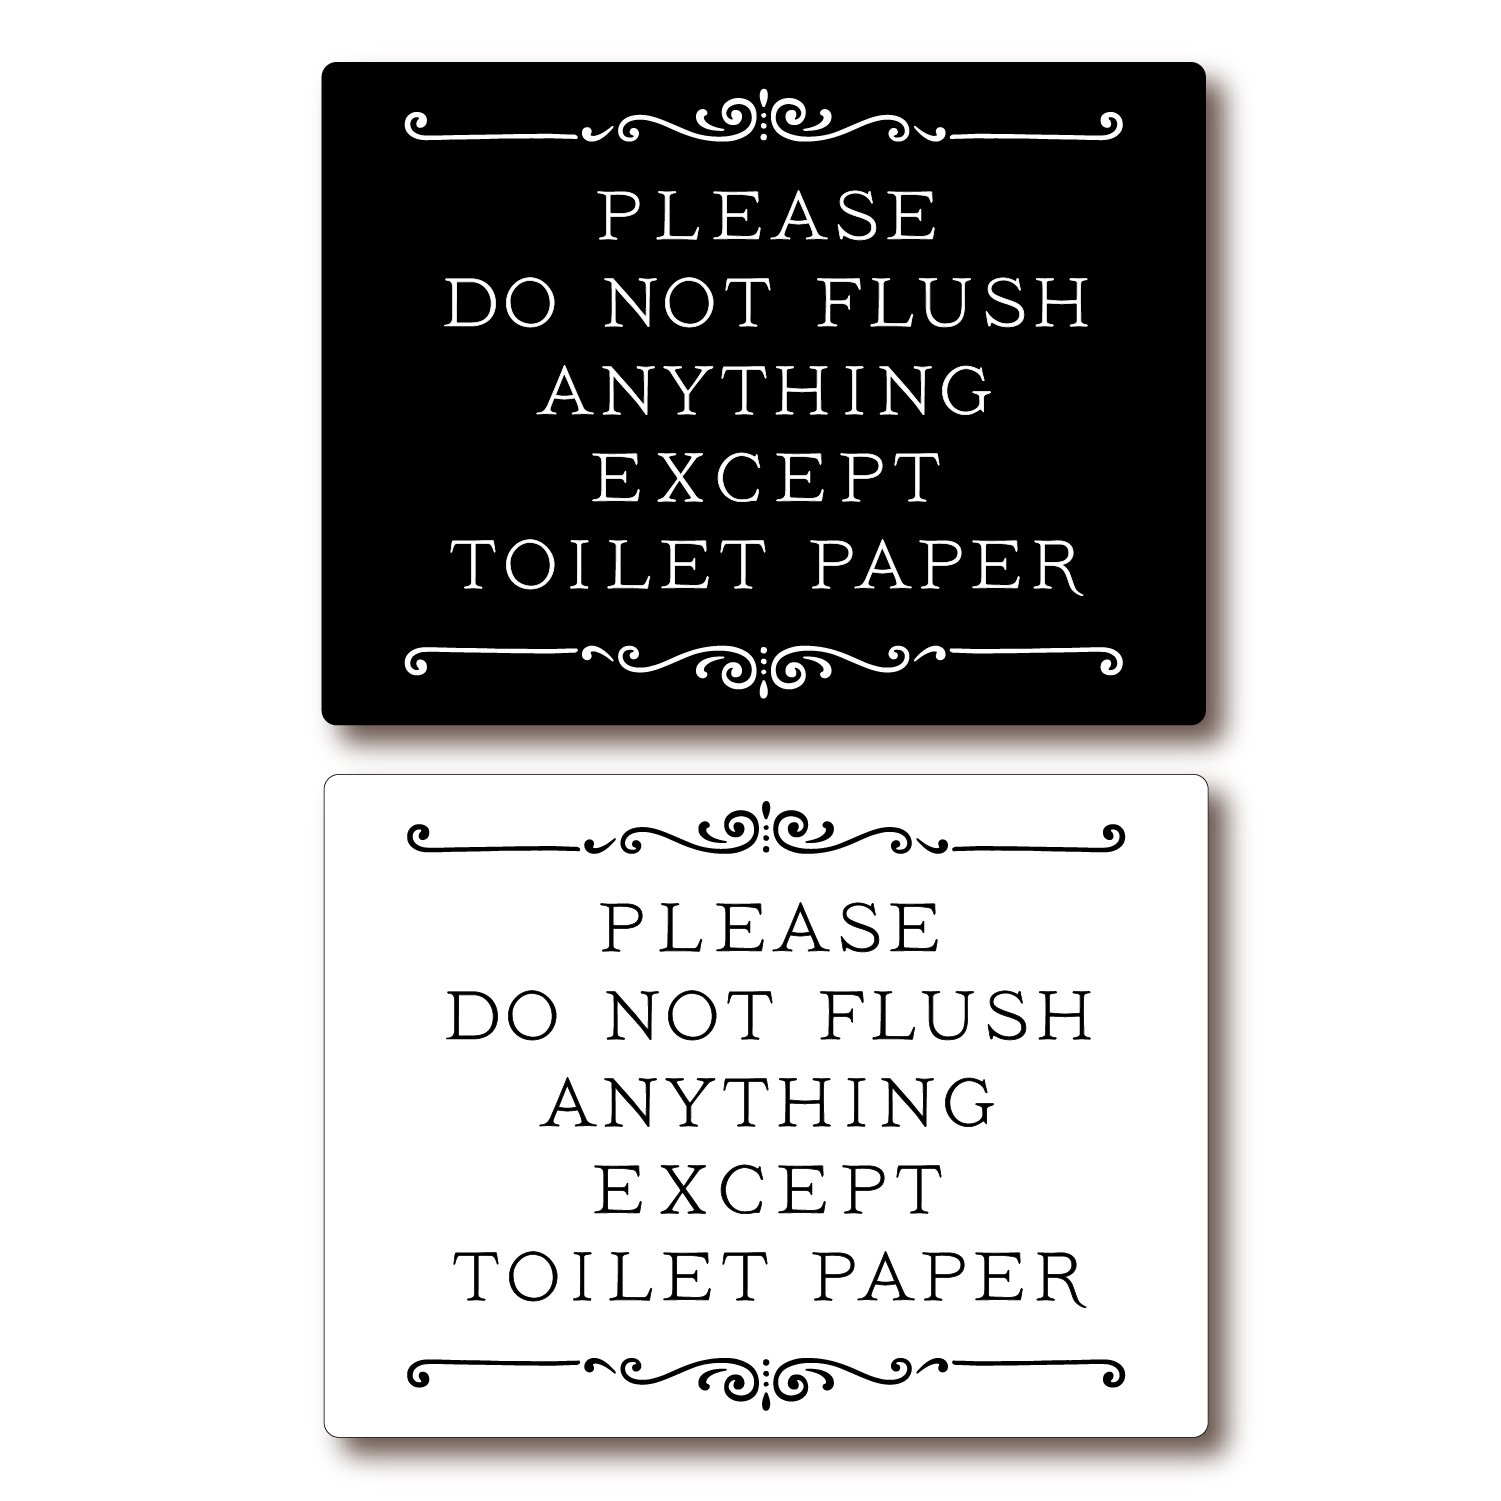 Please Do Not Flush Anything Except Toilet Paper Sign (black)